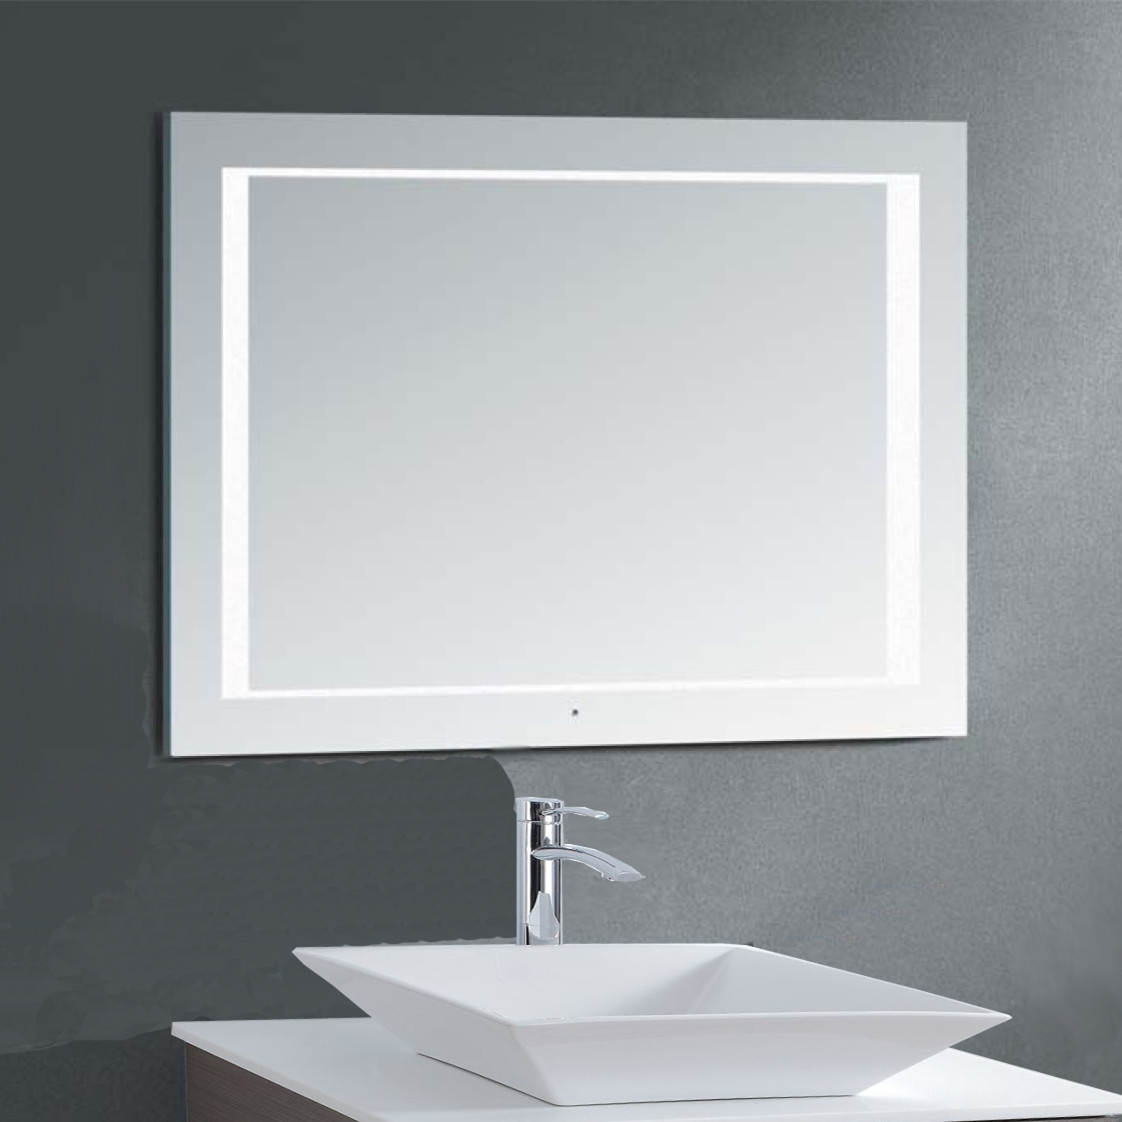 Led Anti Mist Bathroom Mirrors